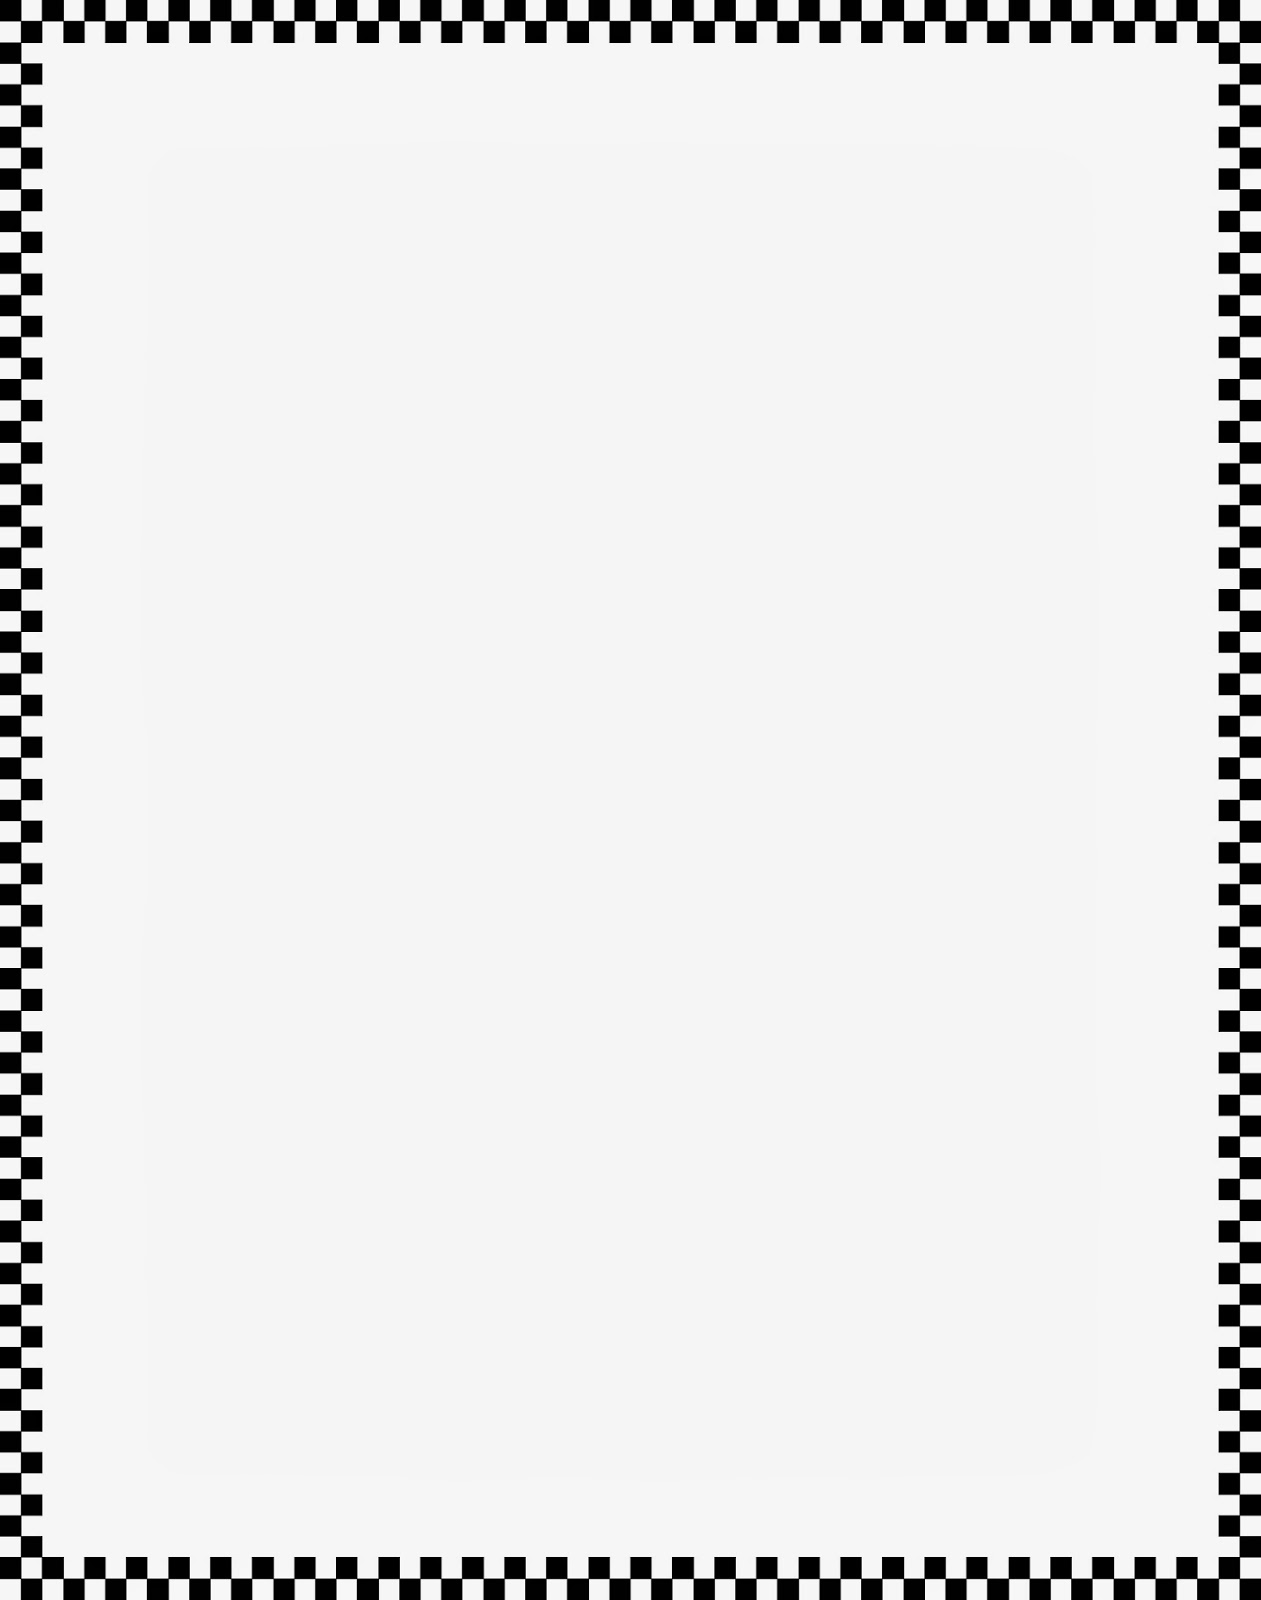 Best Collection Store Page Border Line Art Black White